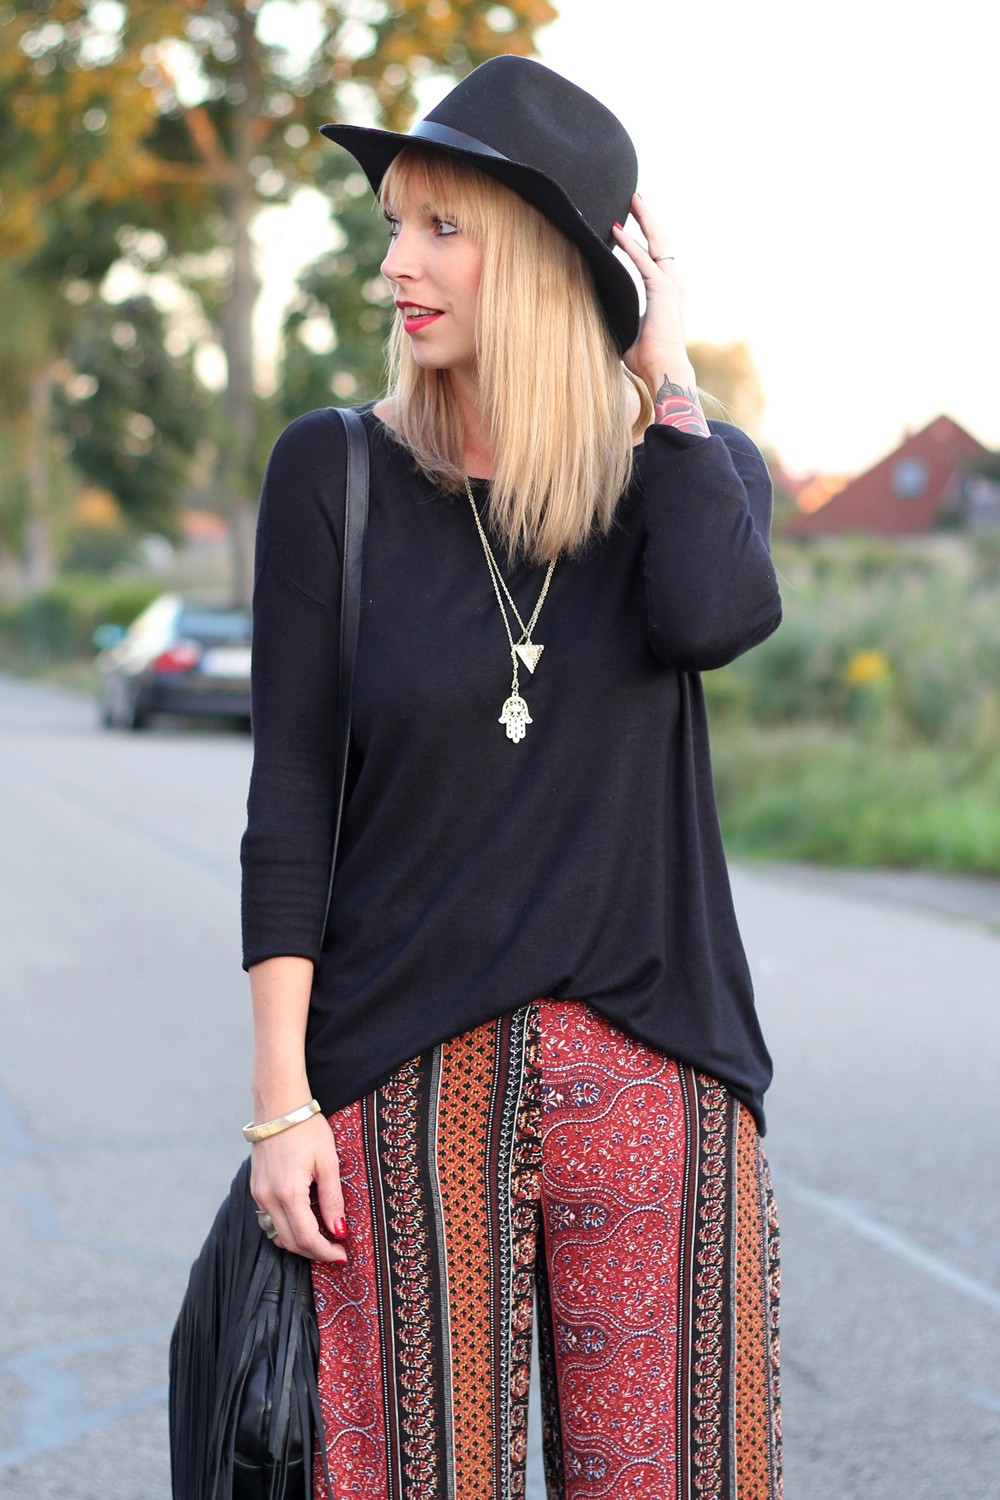 Fashinblogger Karlsruhe Mannheim Outfit Palazzohosen Pull and Bear Sweater Hut Fransentasche 7